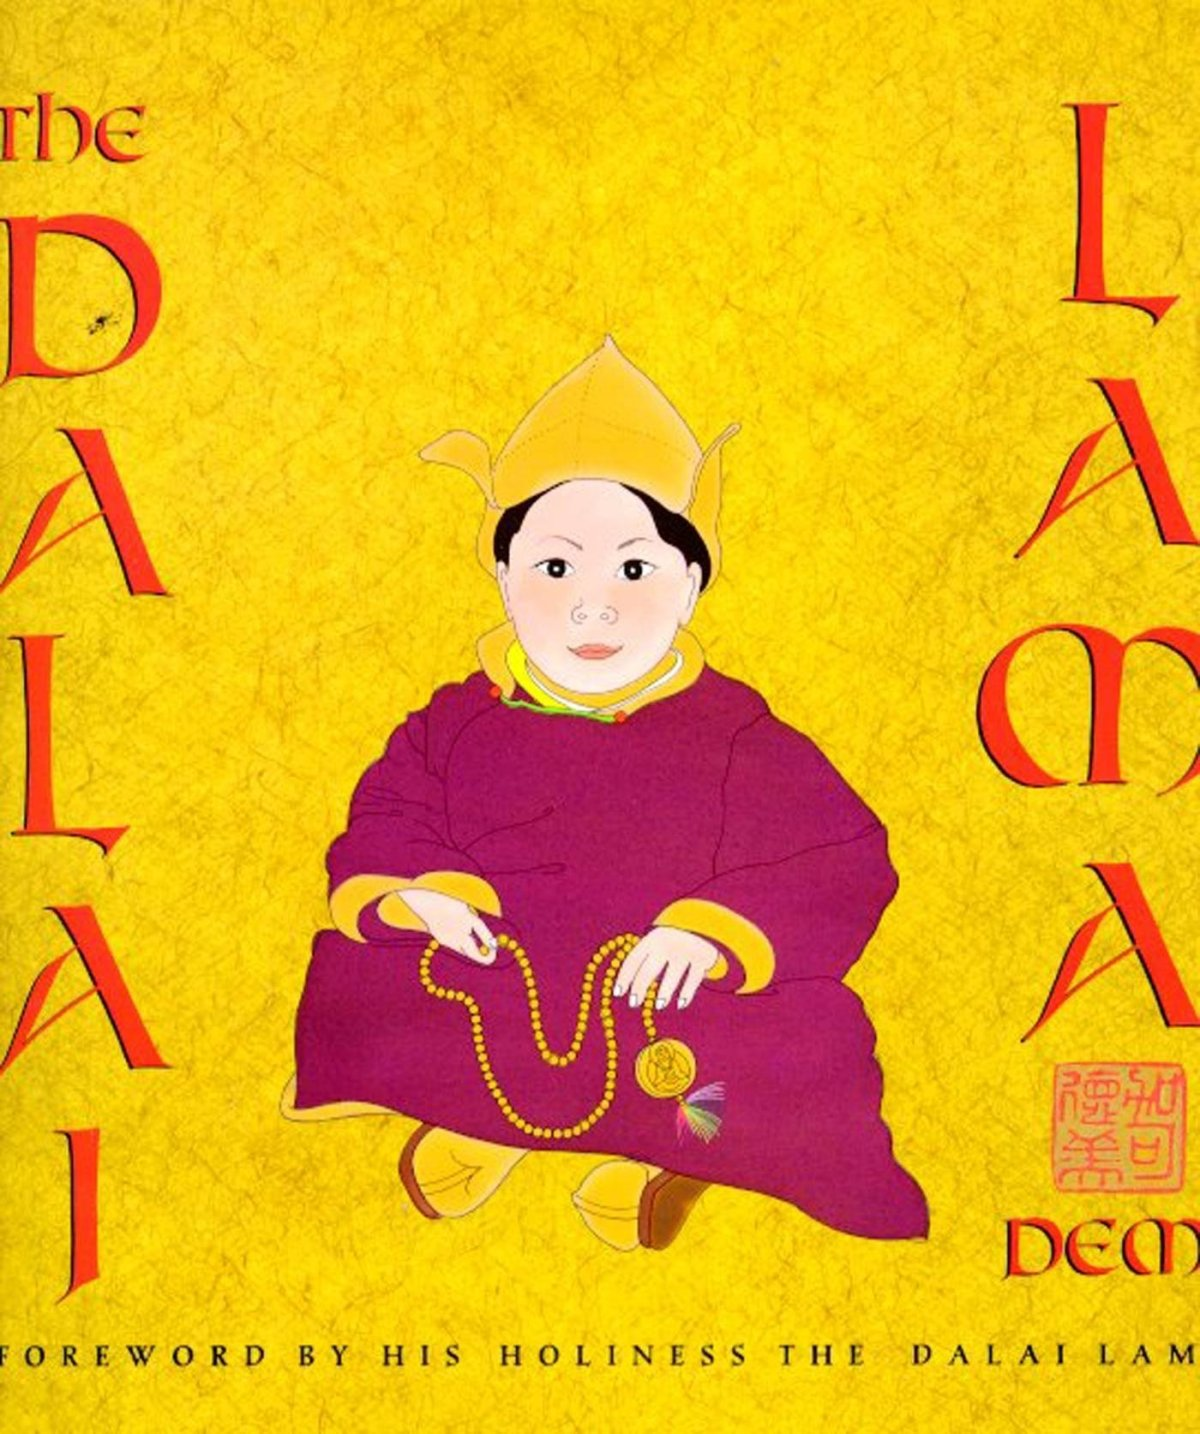 the dalai lama cover image